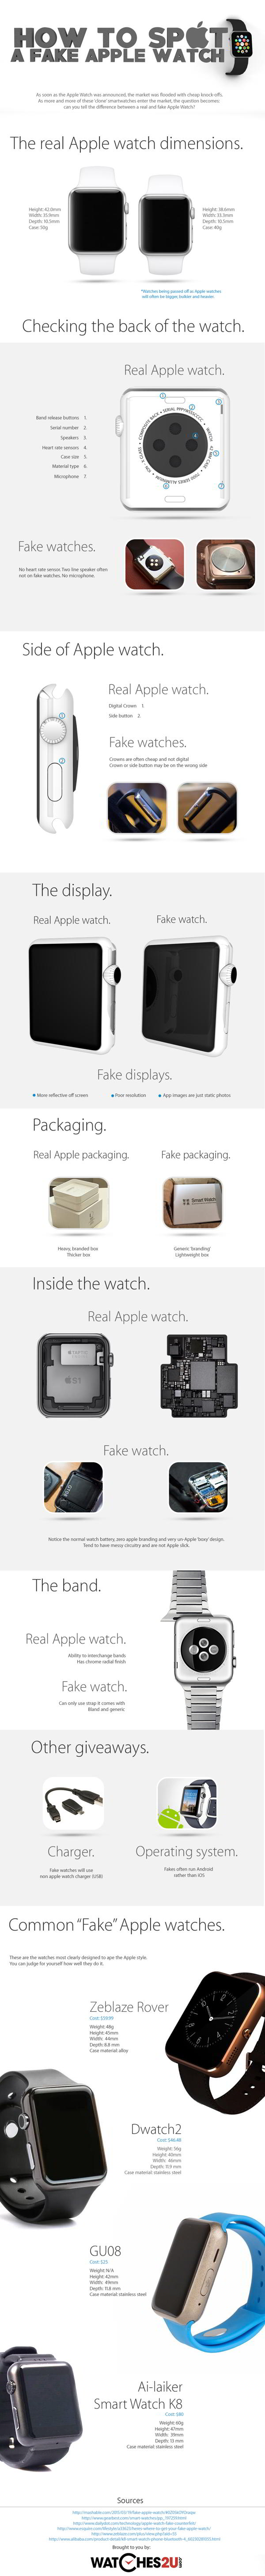 How To Spot A Fake Apple Watch infographic